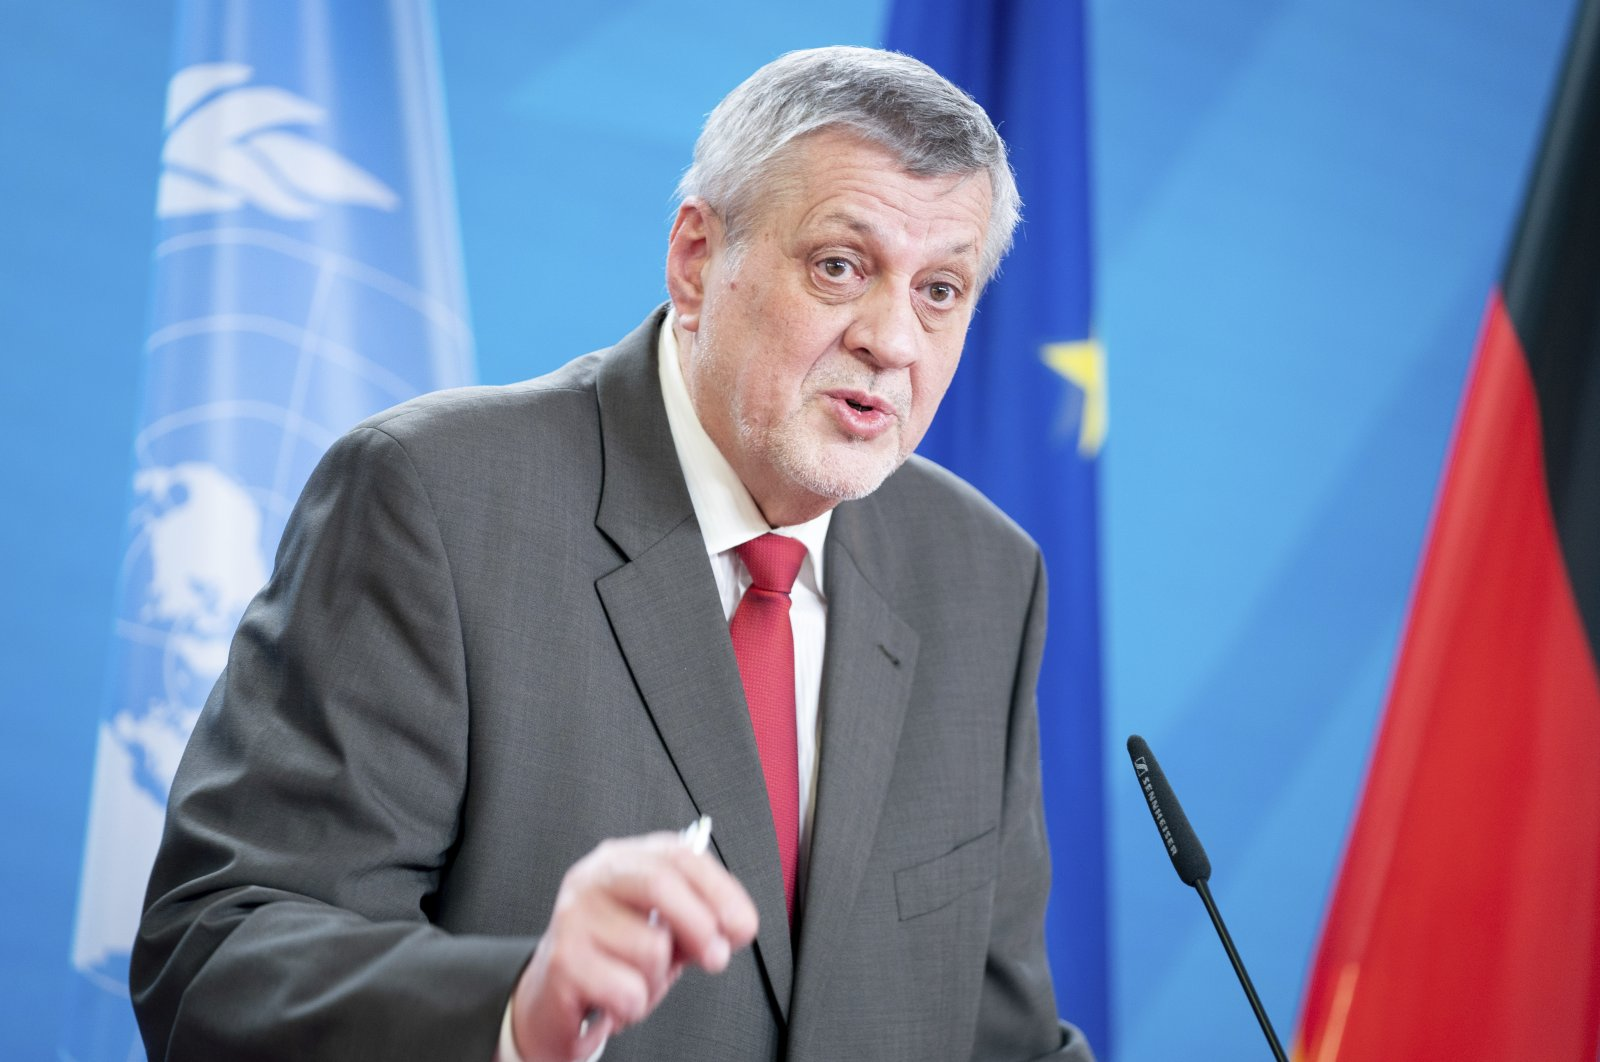 U.N. Special Envoy for Libya Jan Kubis addresses the media during a news conference with German Foreign Minister Heiko Maas at the Foreign Office in Berlin, Germany, March 18, 2021. (AP File Photo)